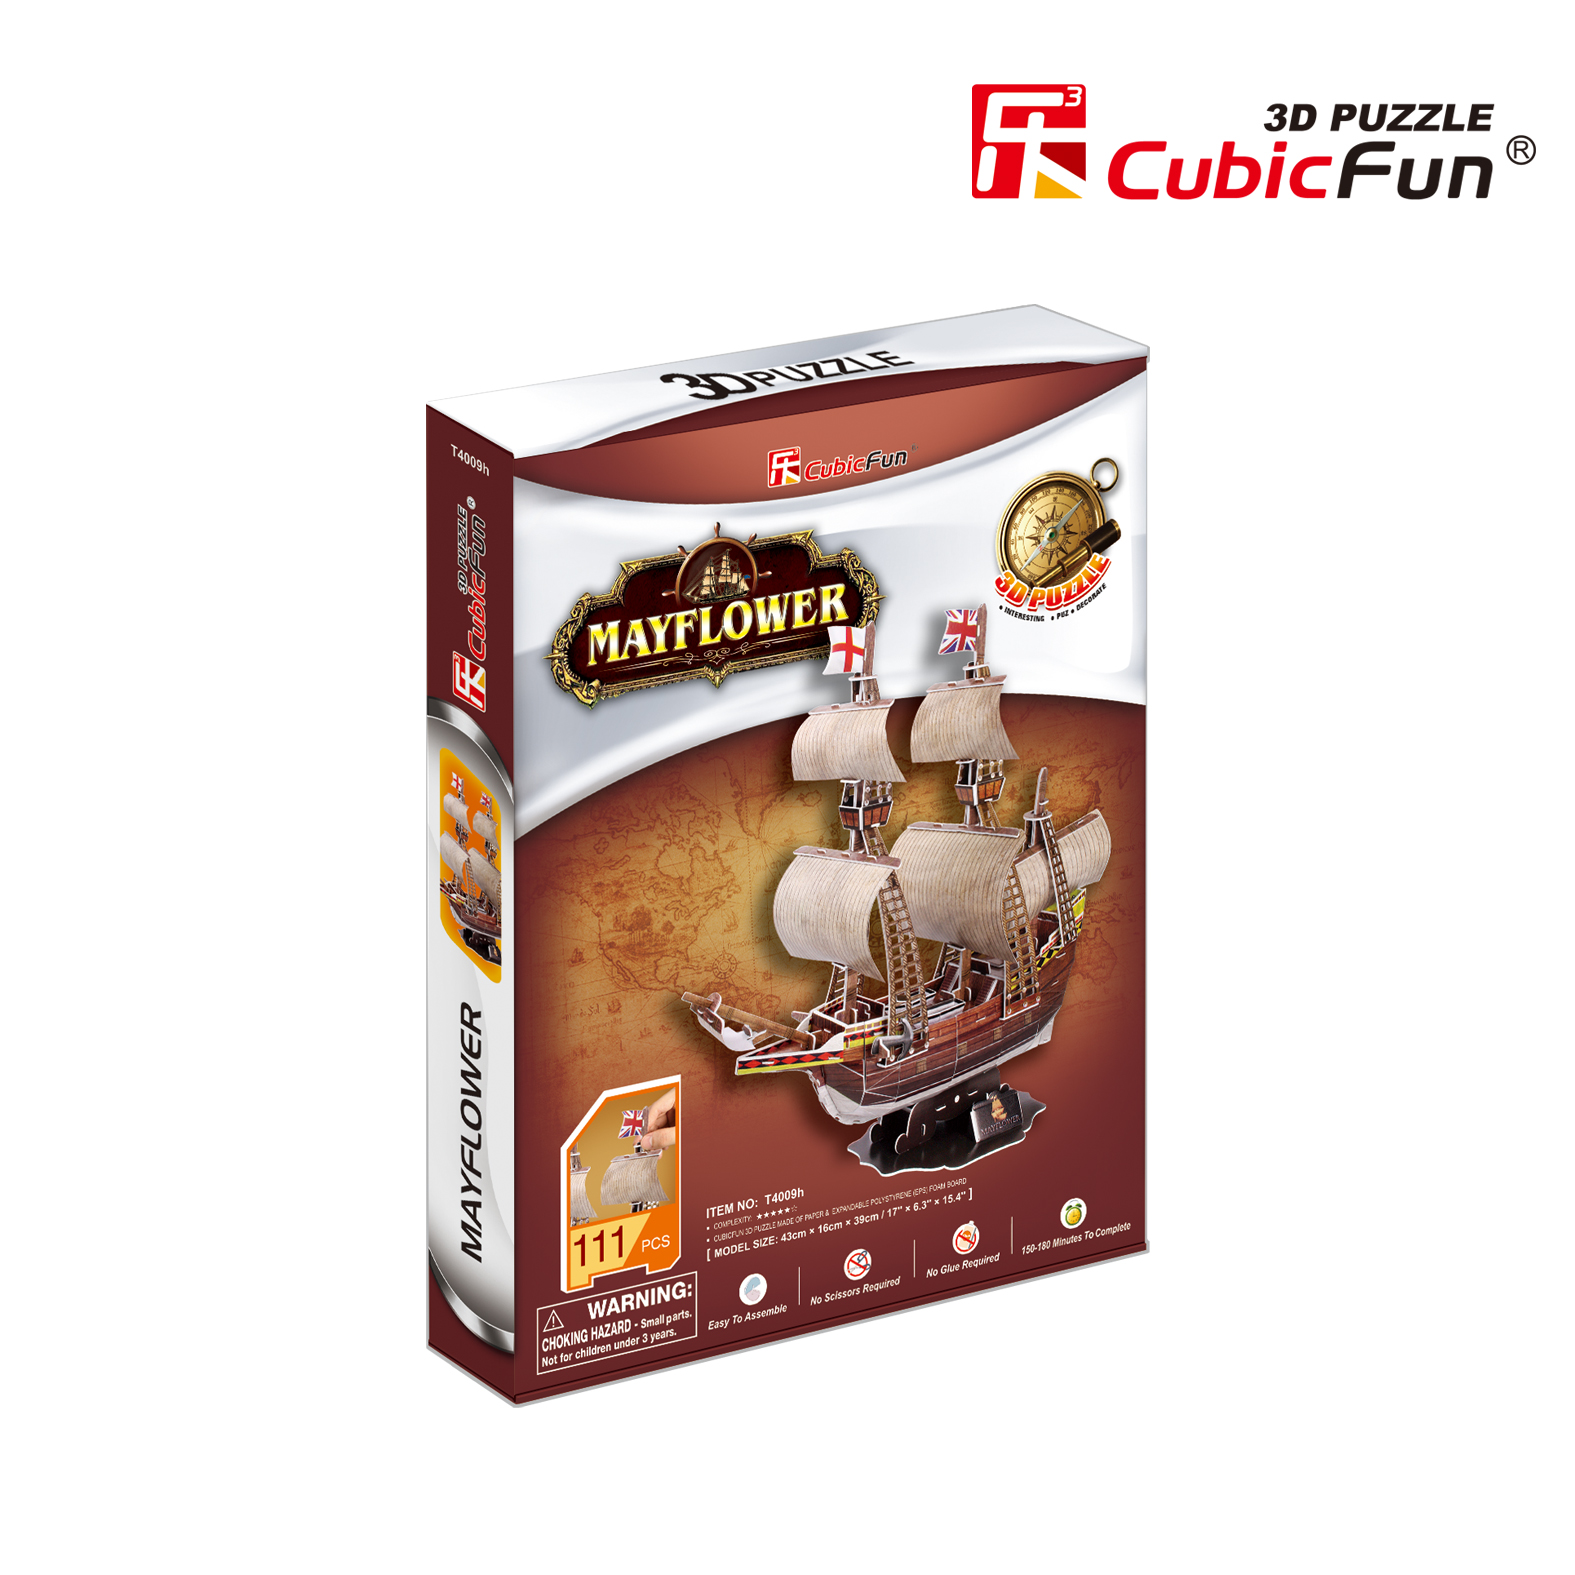 cubic-fun-3d-puzzle-may-flower-schwierigkeit-4-8-111-teile-puzzle-cubic-fun-t4009h